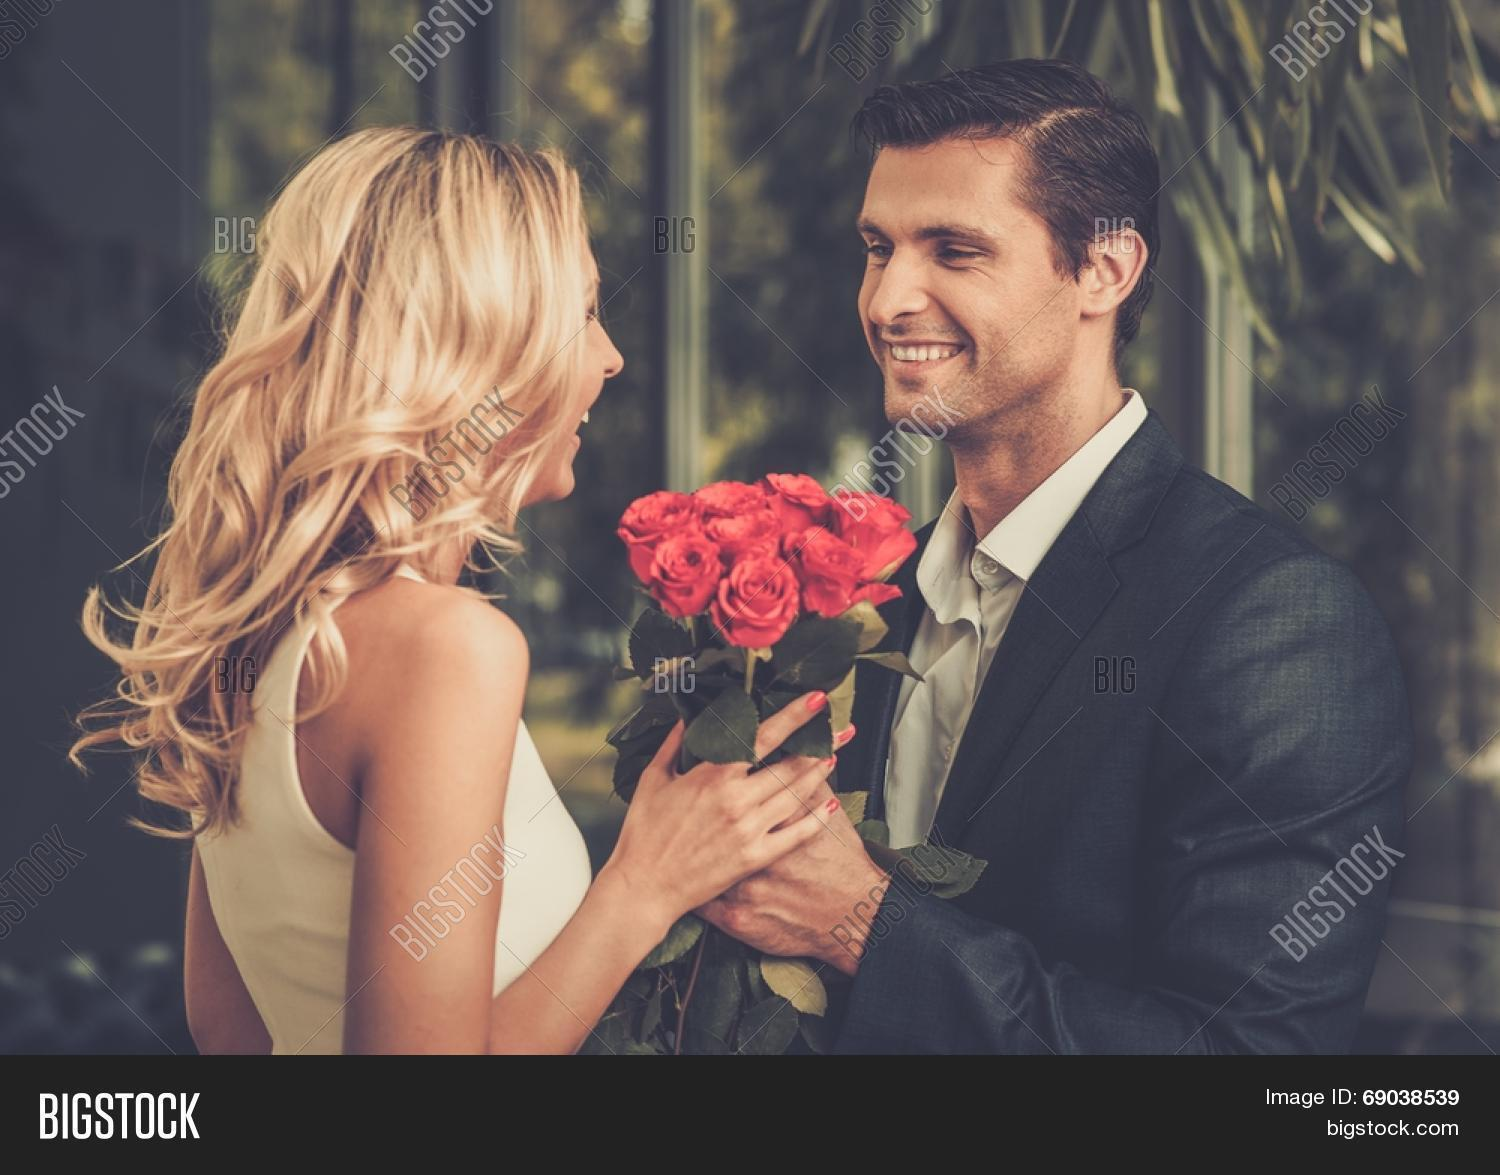 red roses dating Picture of handsome man with bunch of red roses dating his lady stock photo,  images and stock photography image 29540042.